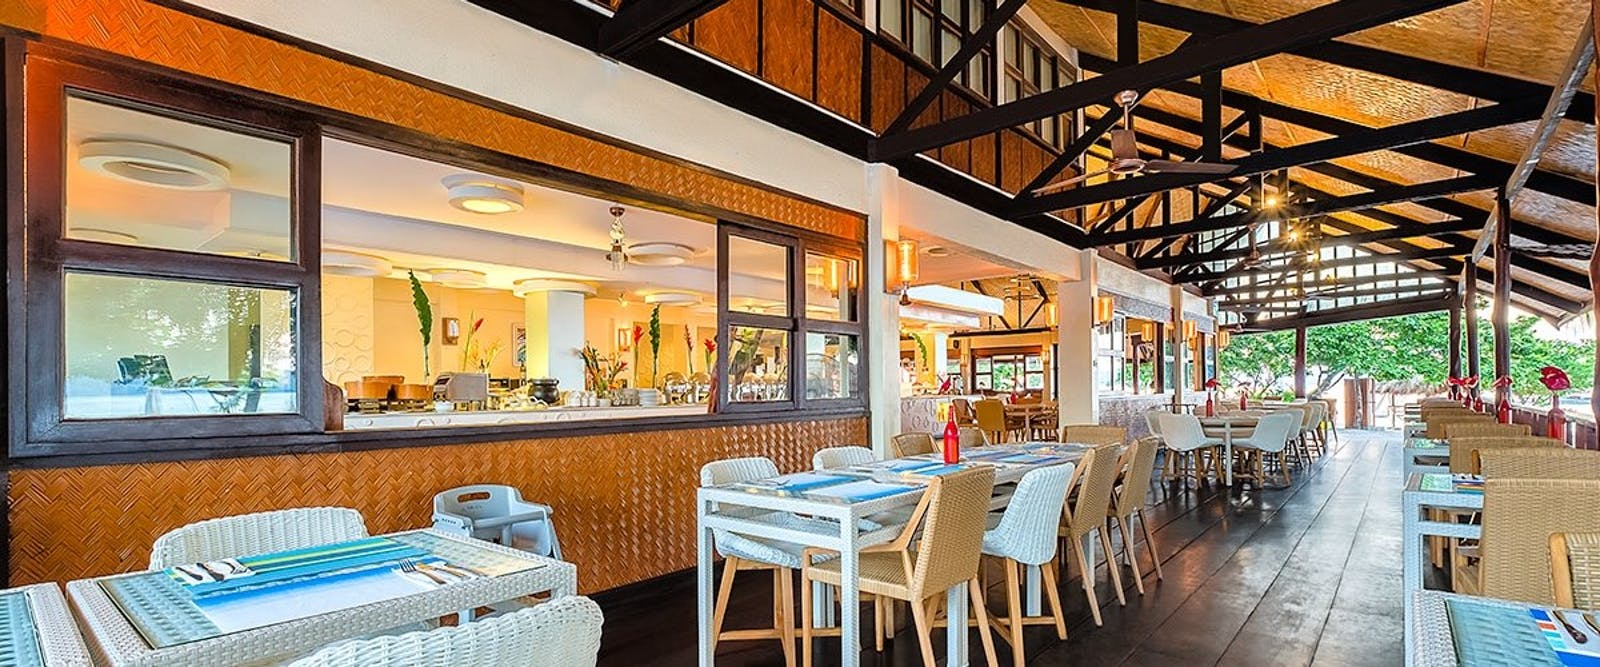 Firefish restaurant at Club Paradise Coron, Palawan